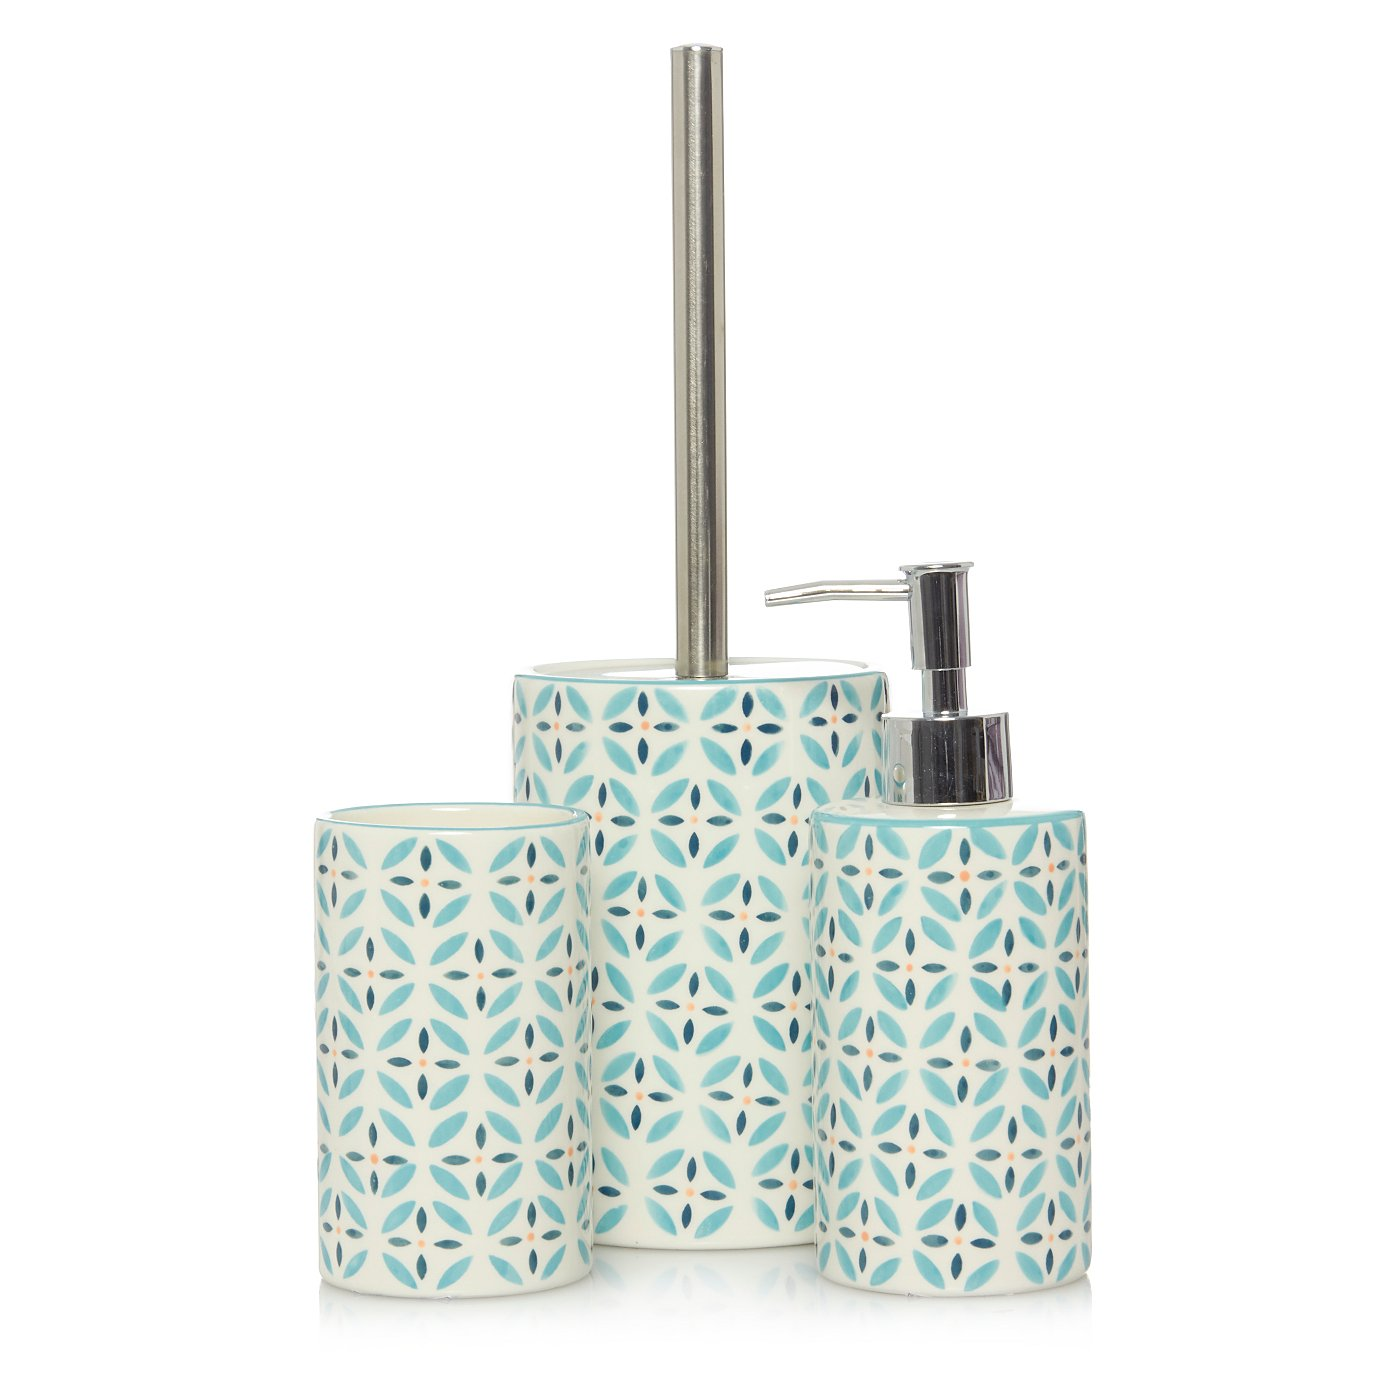 Bathroom Accessories Home  Garden George At ASDA - Bathroom accessories